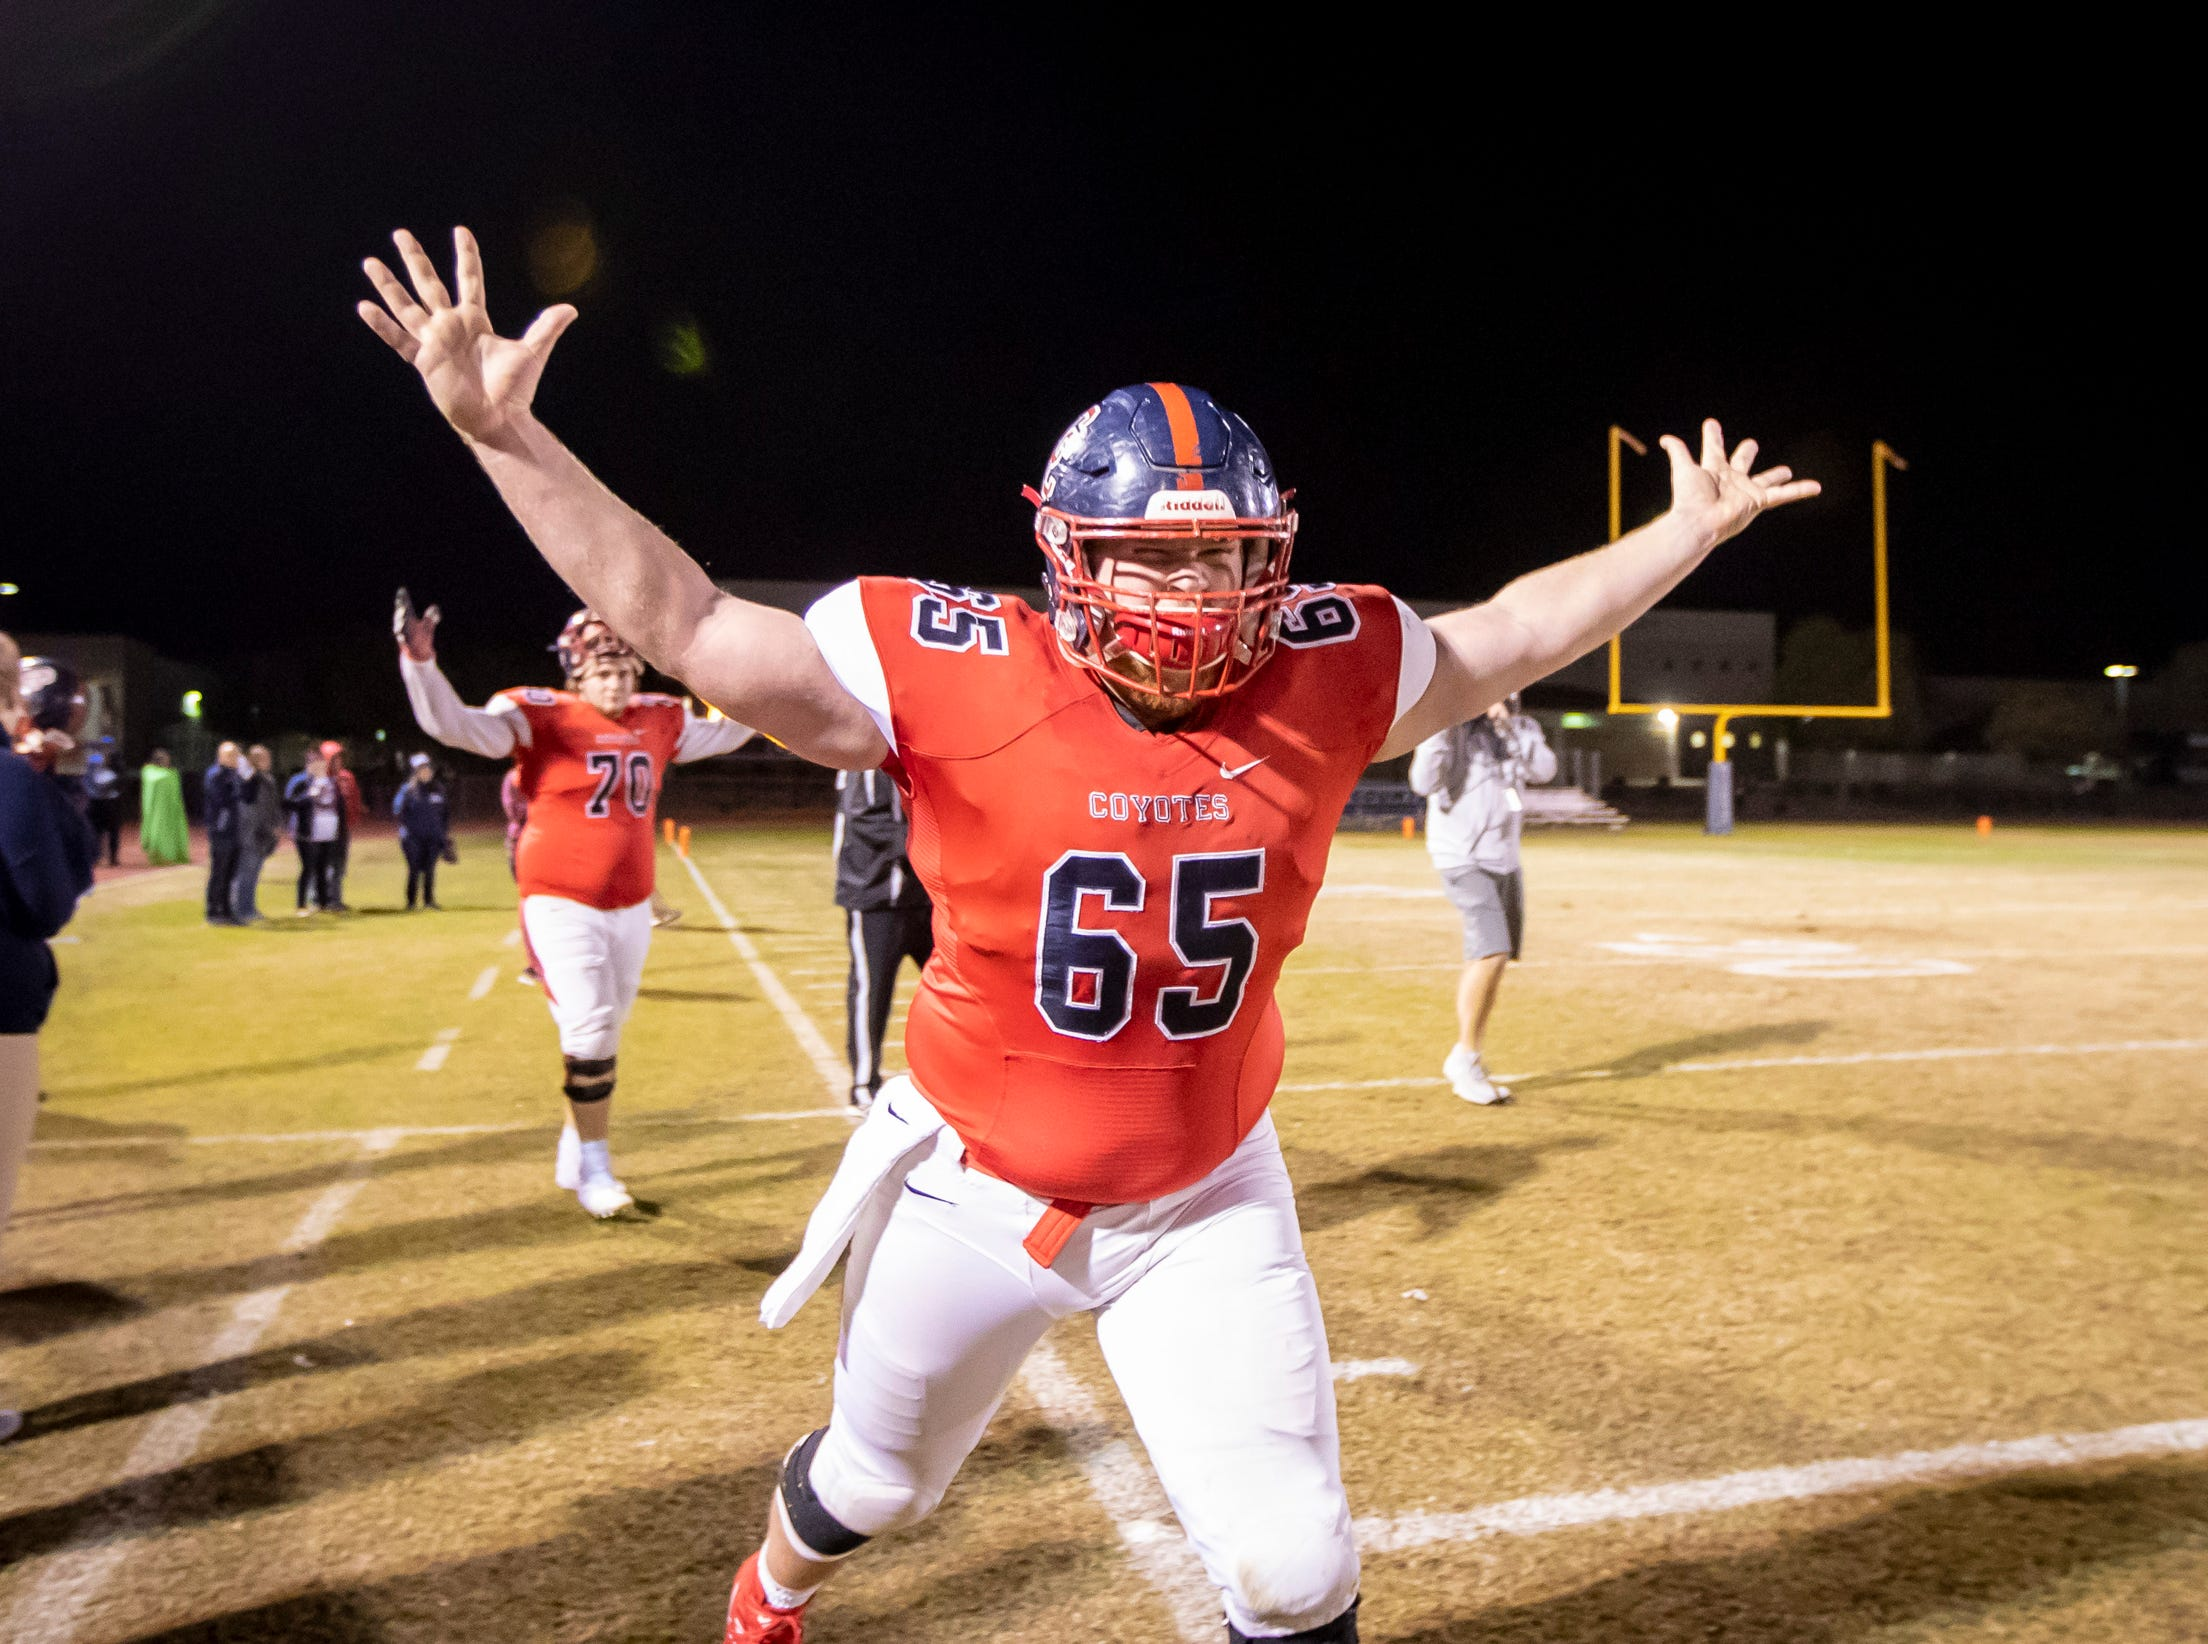 Senior center Carson Keltner (65) of the Centennial Coyotes celebrates following Centennial's 48-13 win against the Higley Knights in a 5A semifinals at Willow Canyon High School on Friday, November 16, 2018 in Surprise, Arizona. #azhsfb